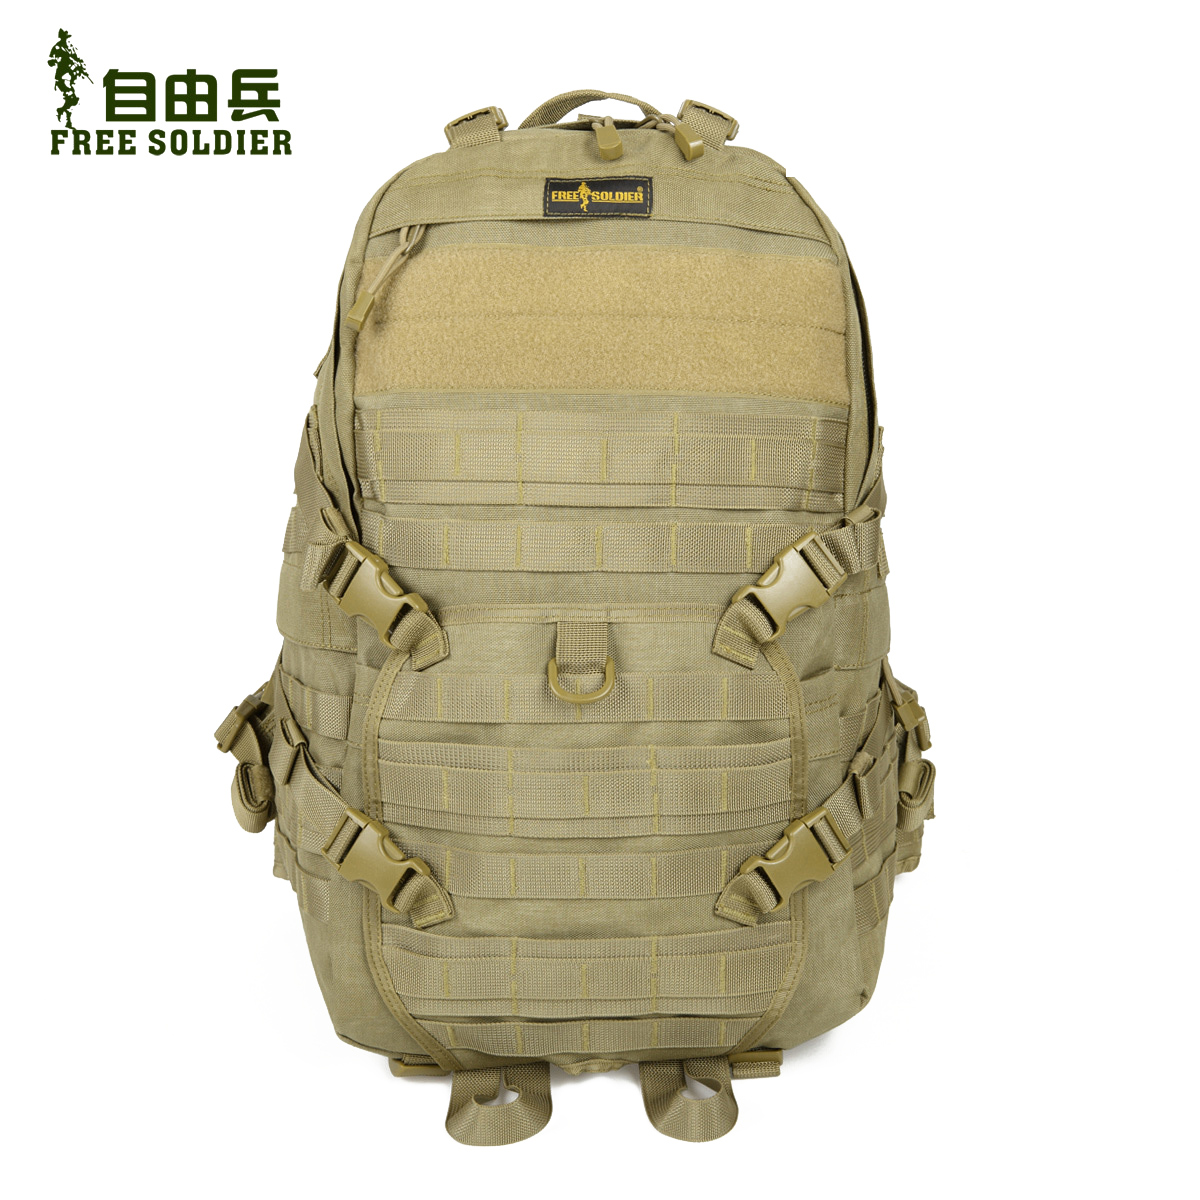 Outdoor tad second generation tactical attack backpack travel hiking bag camping